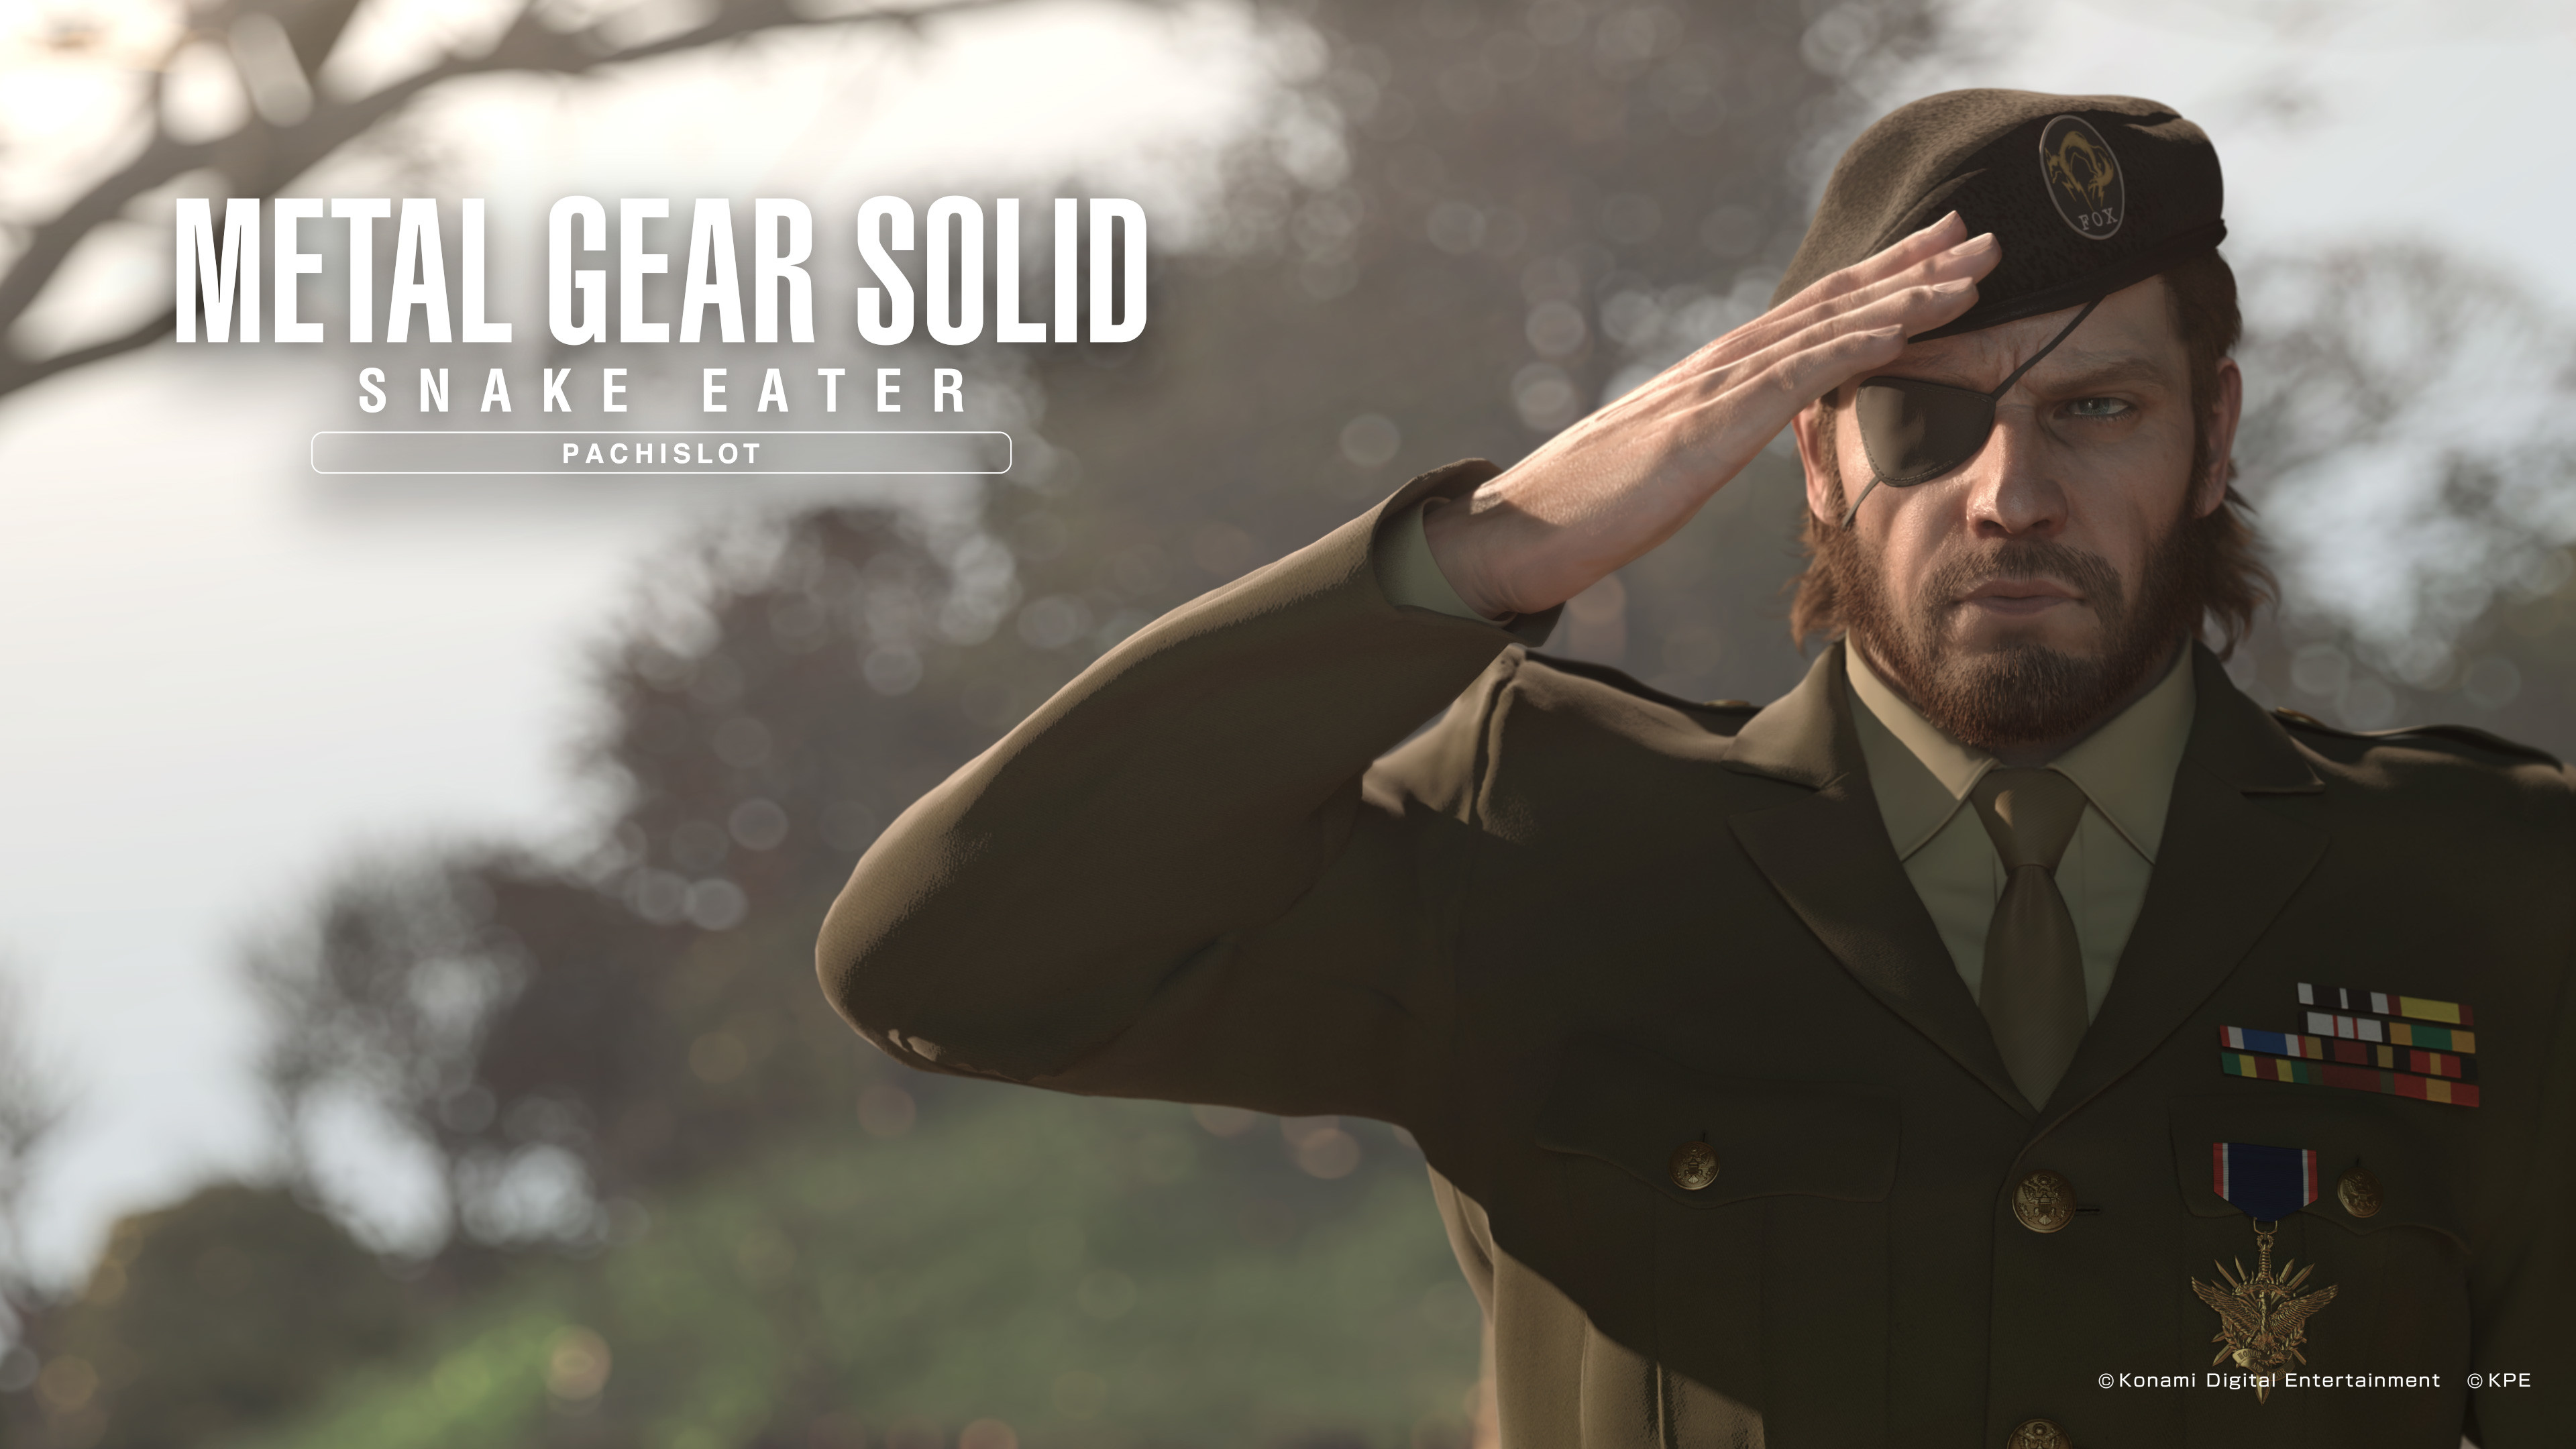 3840x2160 ... MGS-Snake-Eater-Pachislot-Wallpaper-PC-5 ...